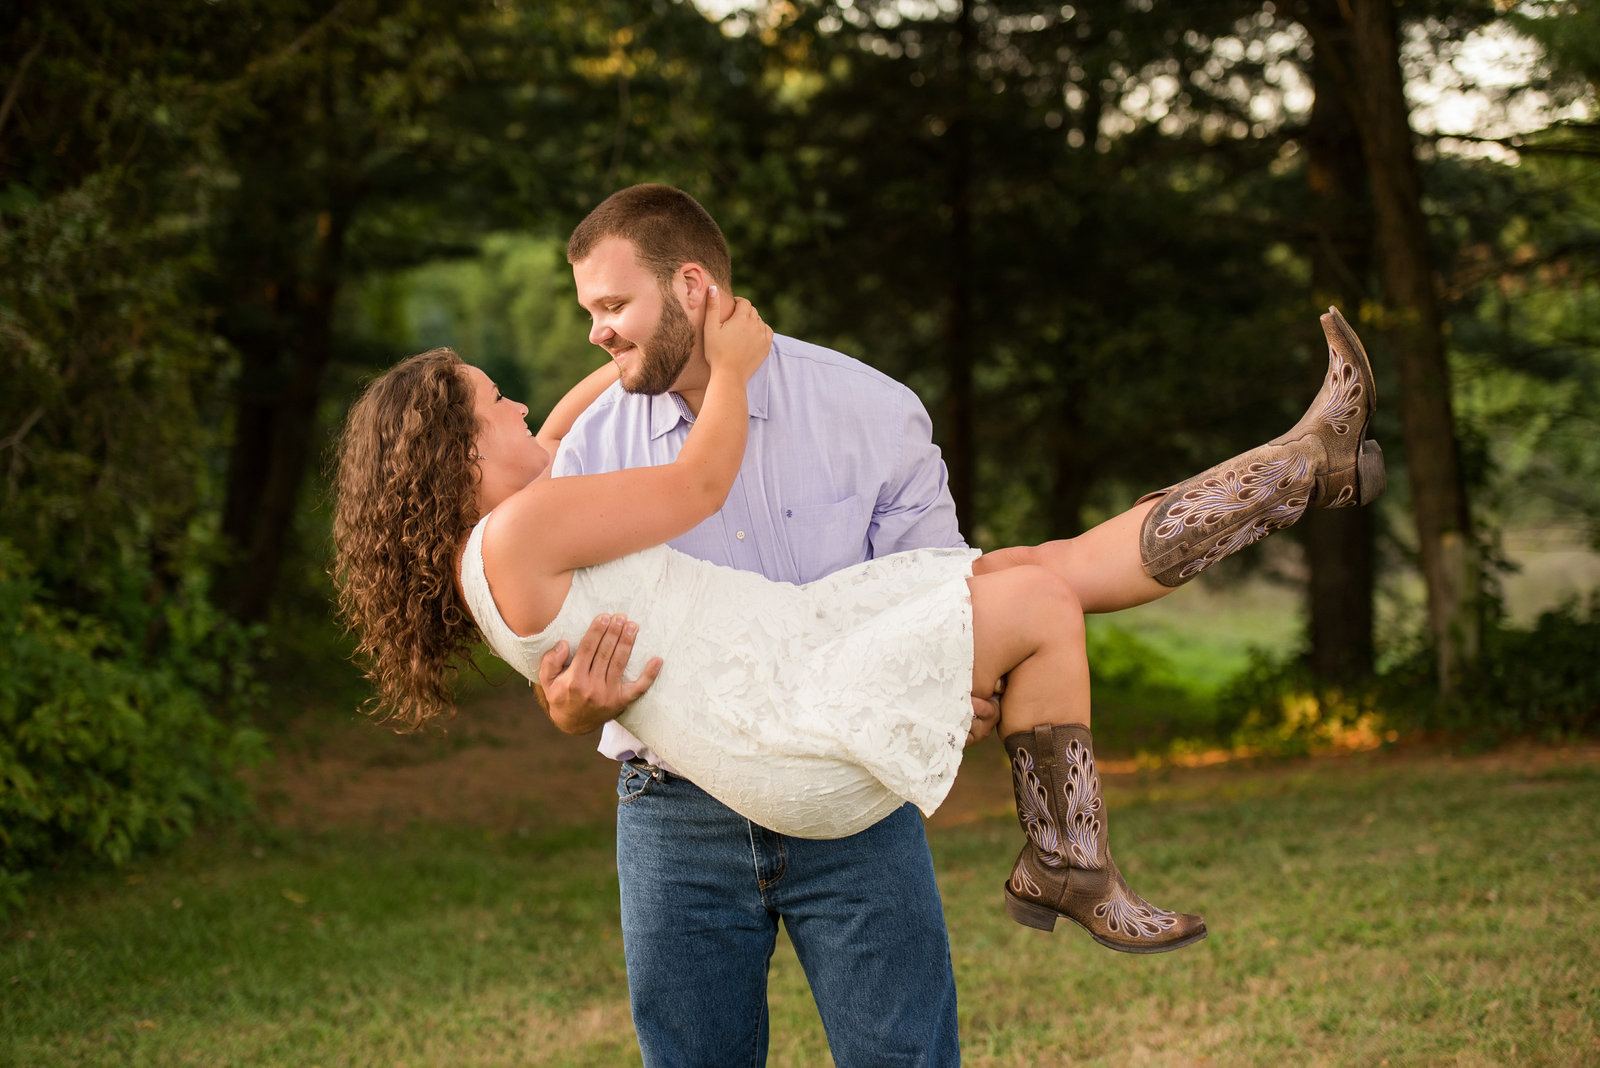 NJ_Rustic_Engagement_Photography135